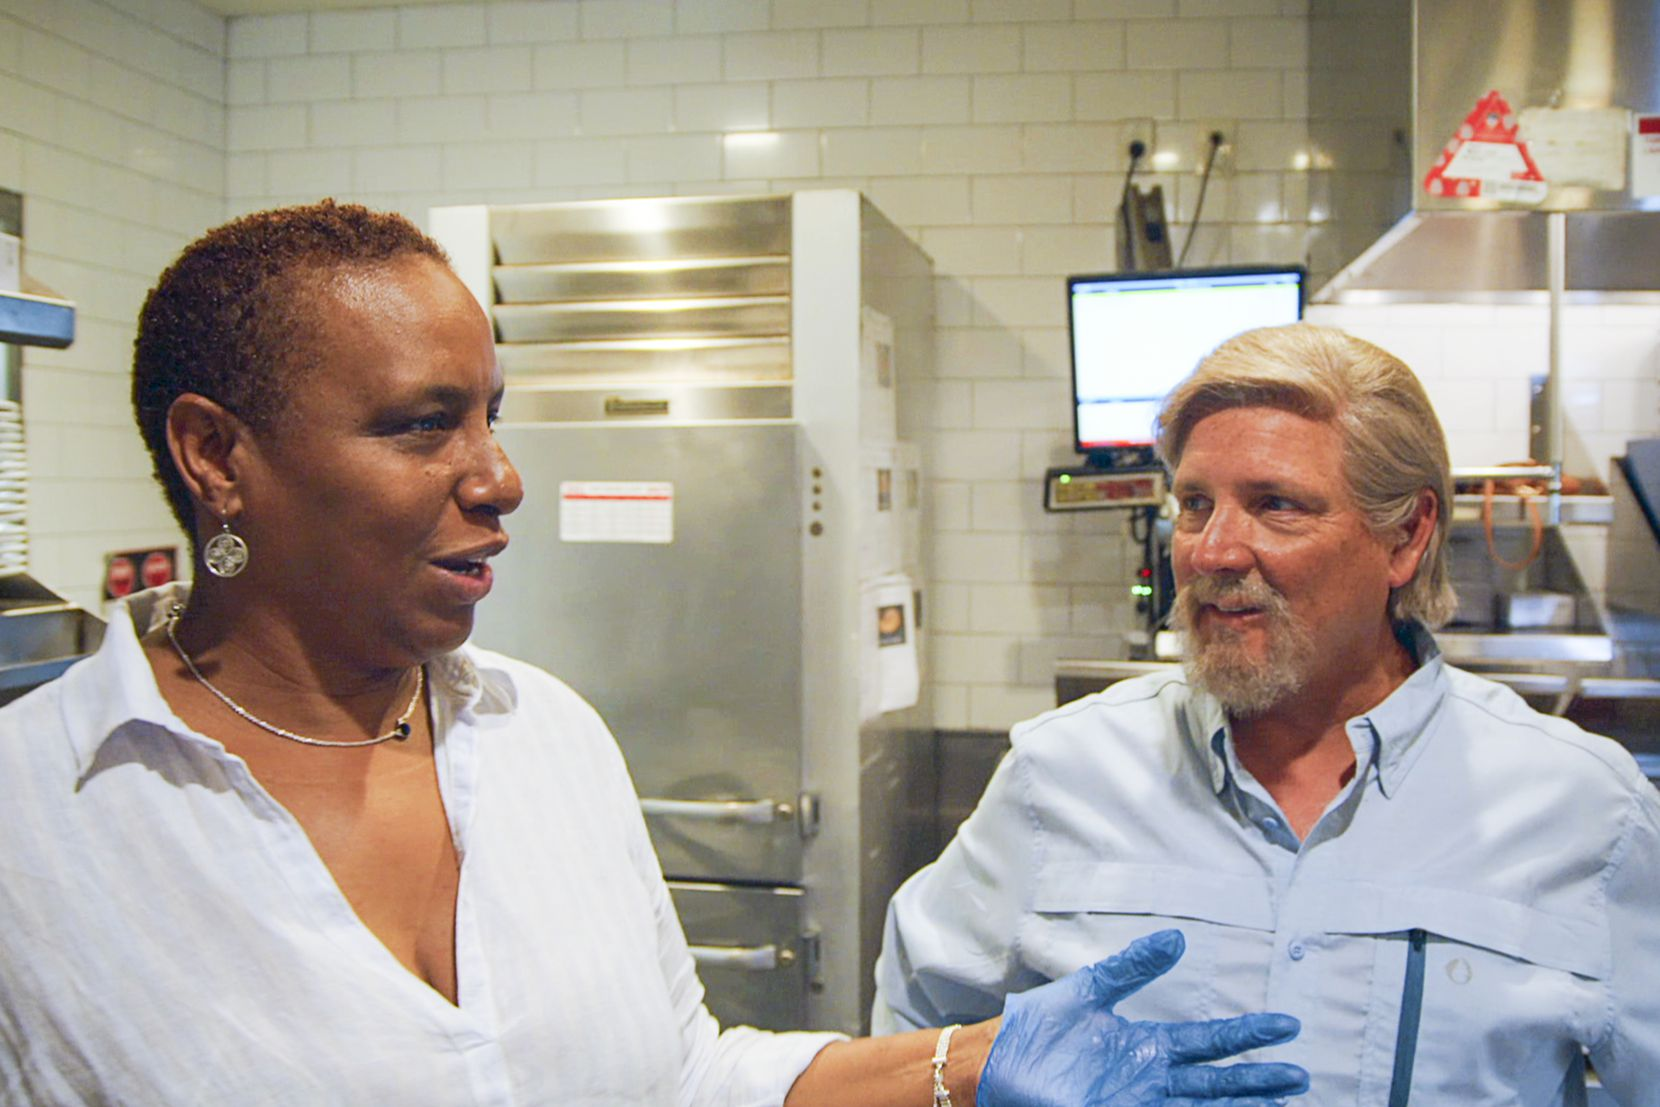 TGI Fridays CEO Ray Blanchette (right) was filmed for the CBS show 'Undercover Boss' in Fall 2019. During the filming, Blanchette talked with an assistant manager who doesn't realize she's having a conversation with the CEO.